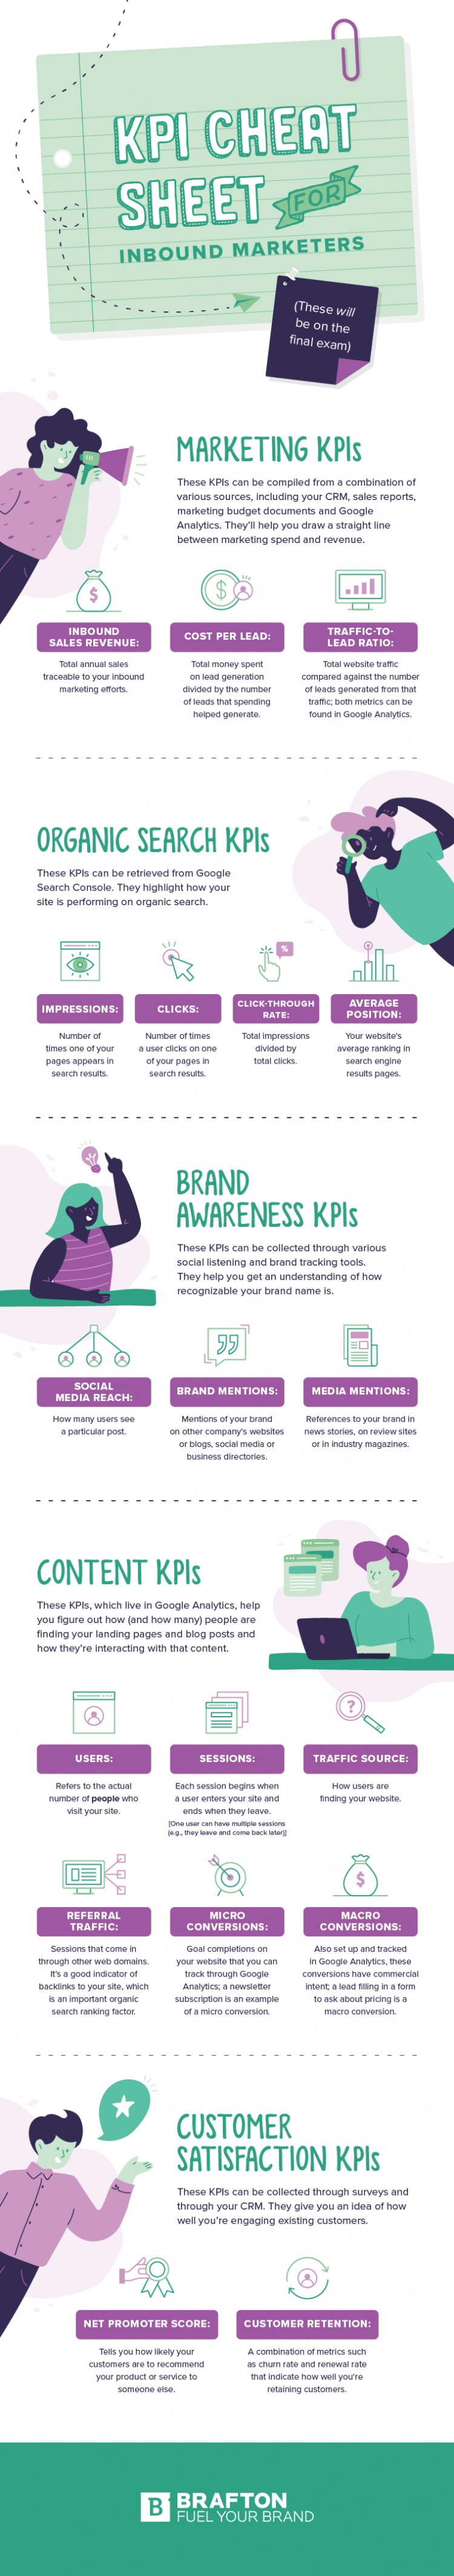 Key marketing KPI examples infographic